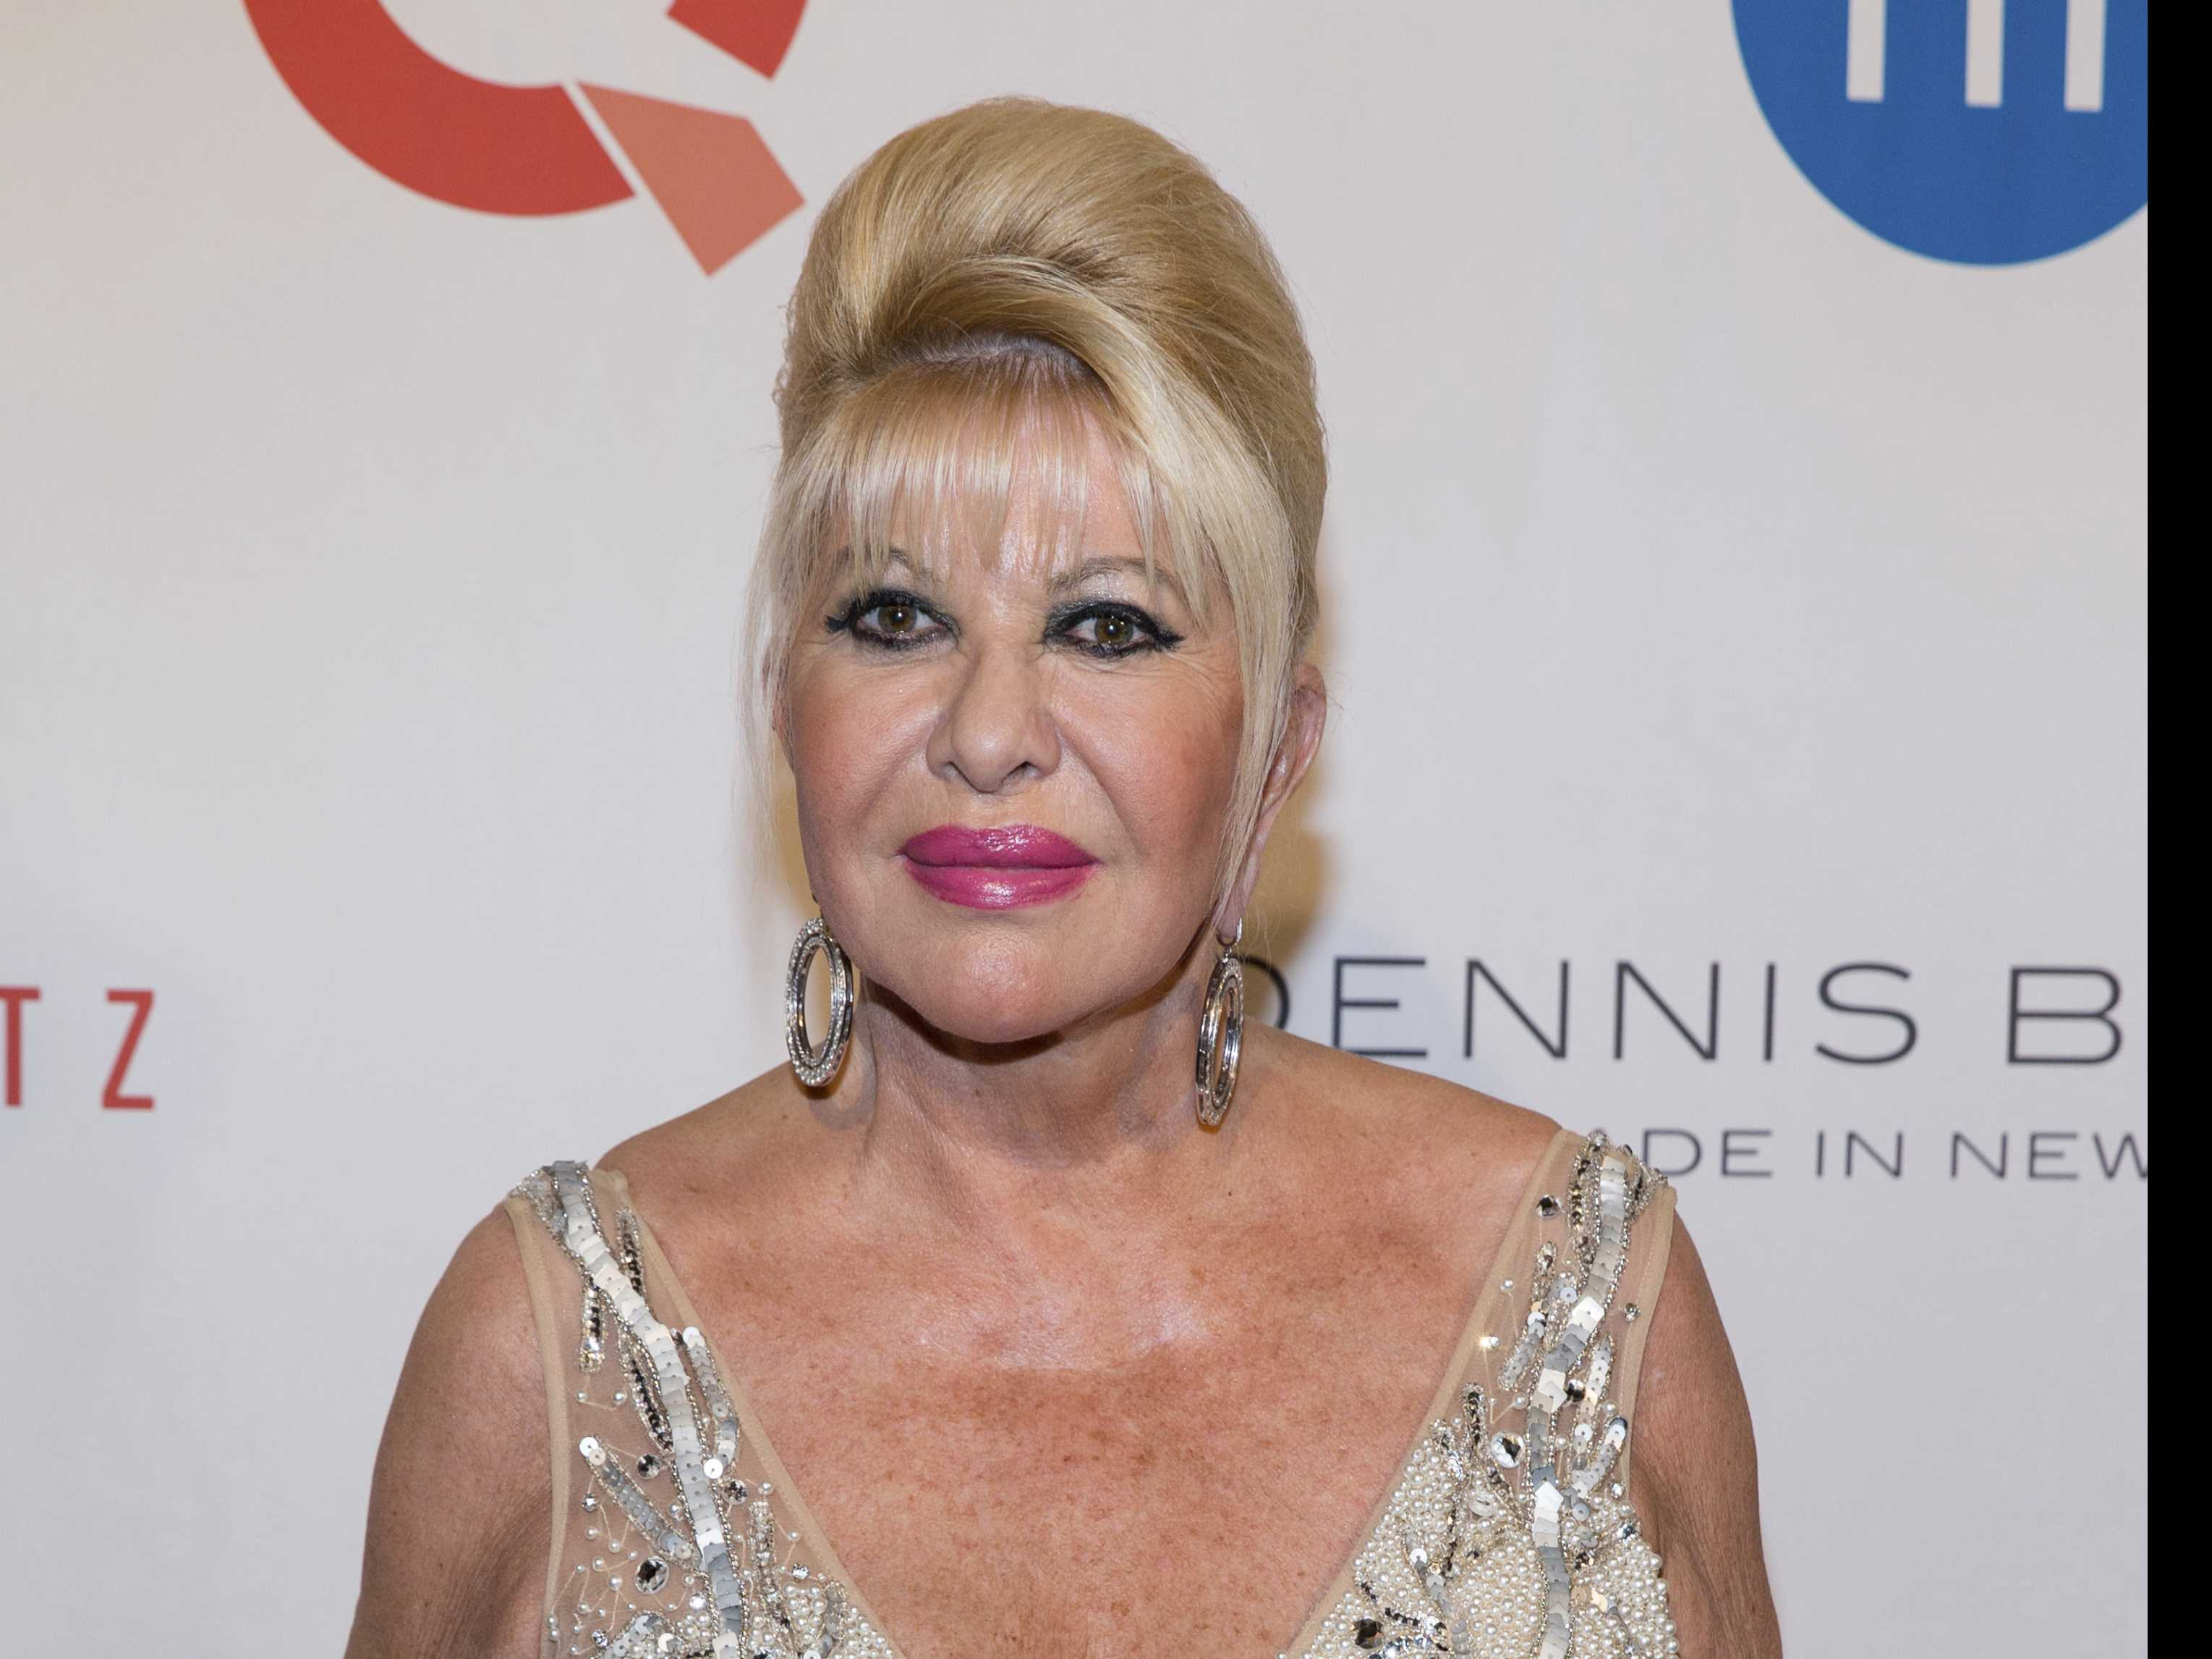 Ivana Trump Explores Marriage to 'the Donald' in New Book